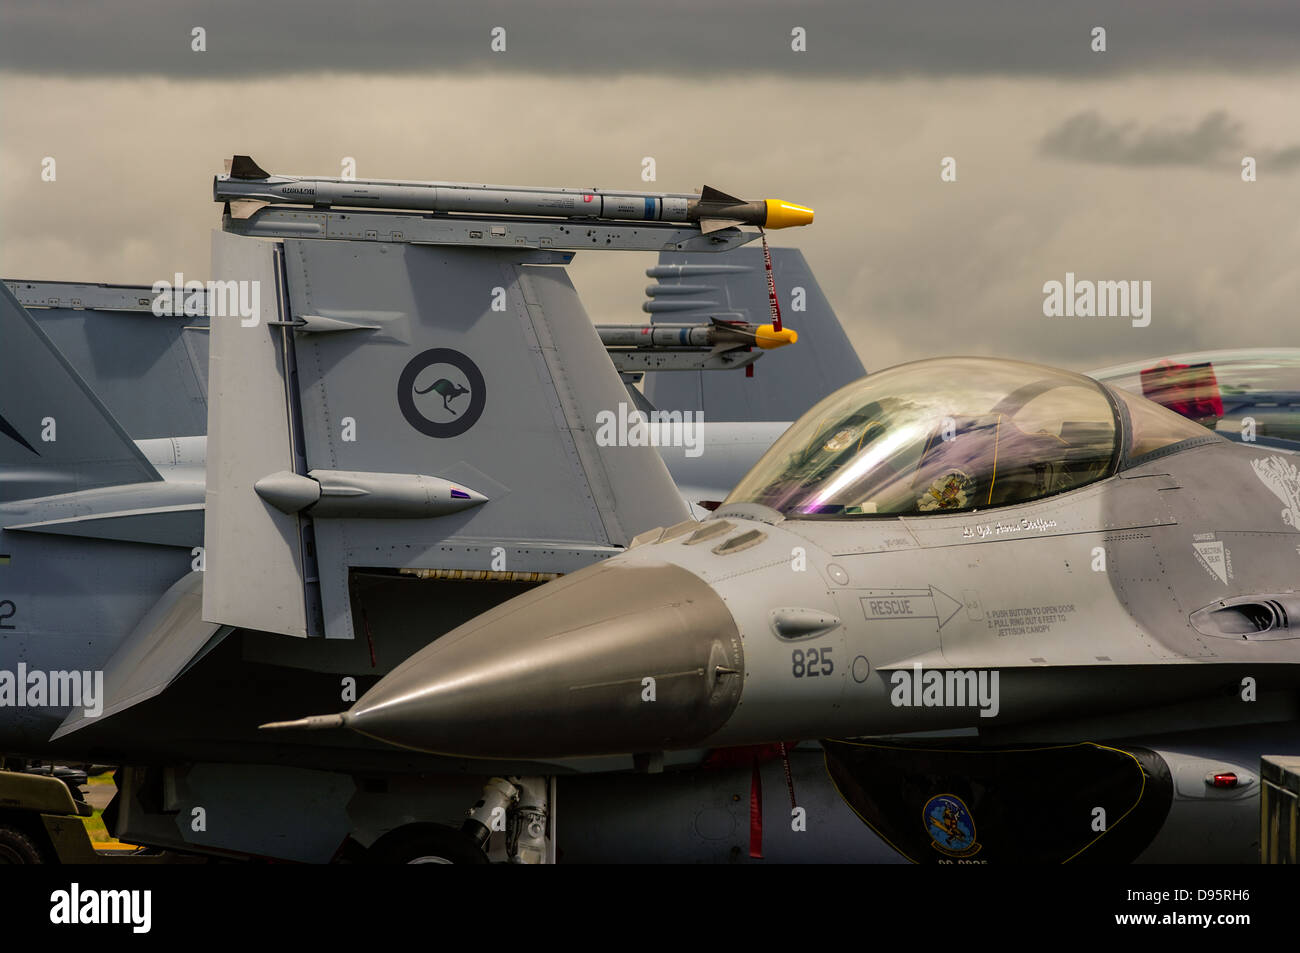 Close up view of a RAAF F-18 Hornet and a USAF F-16 Fighting Falcon fighter jet. - Stock Image